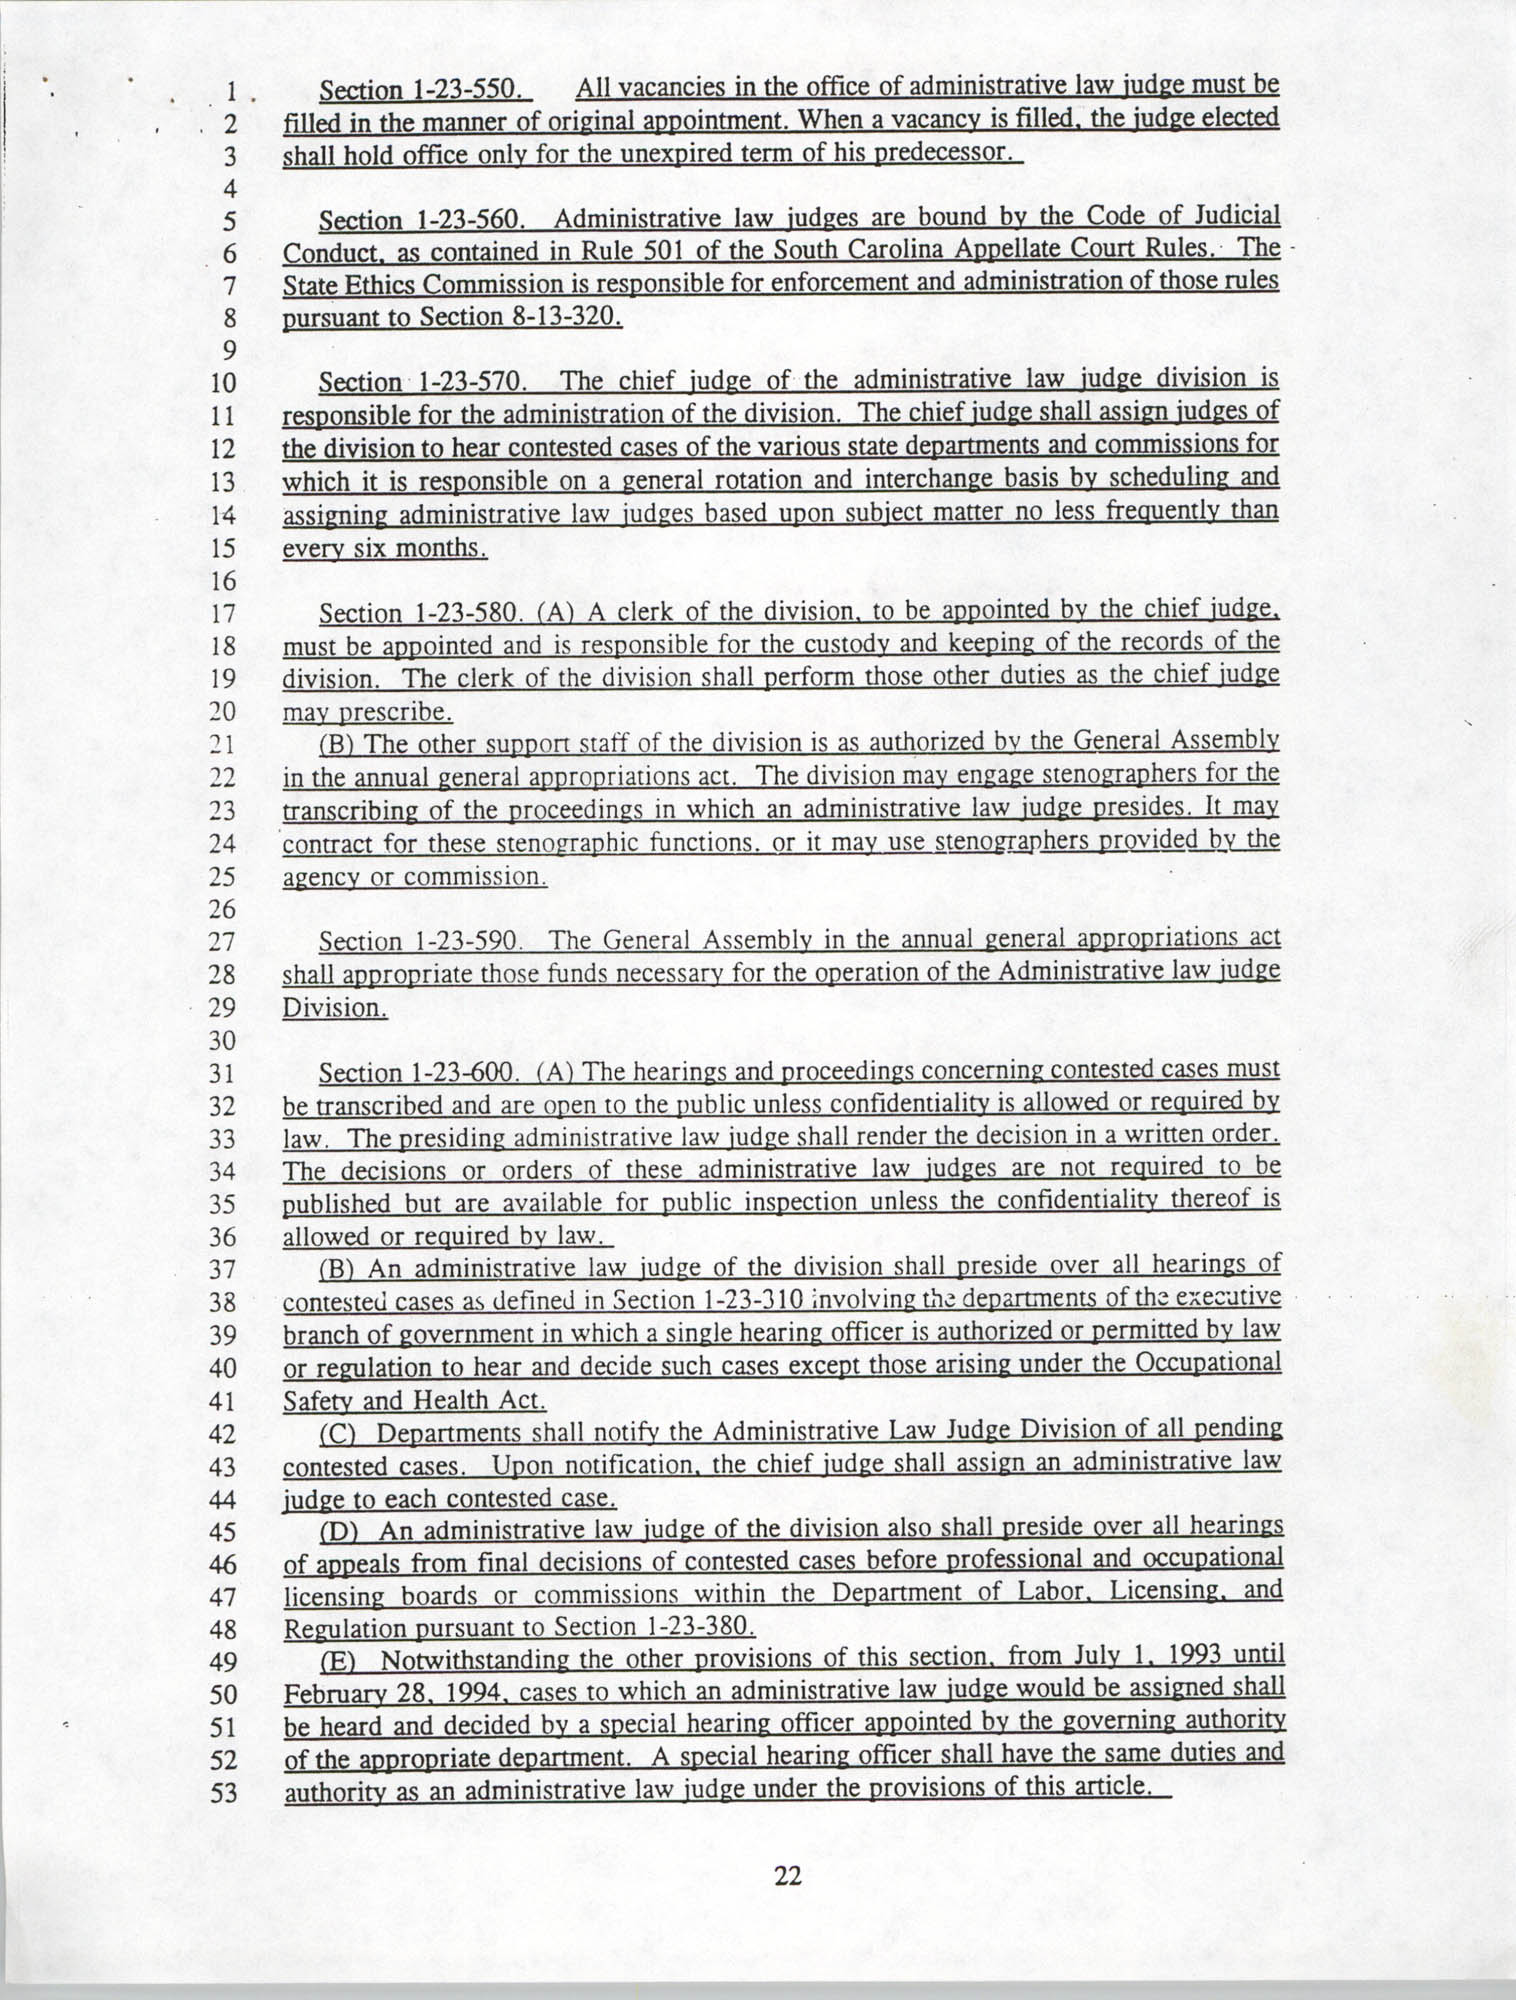 Restructuring Bill, Page 22